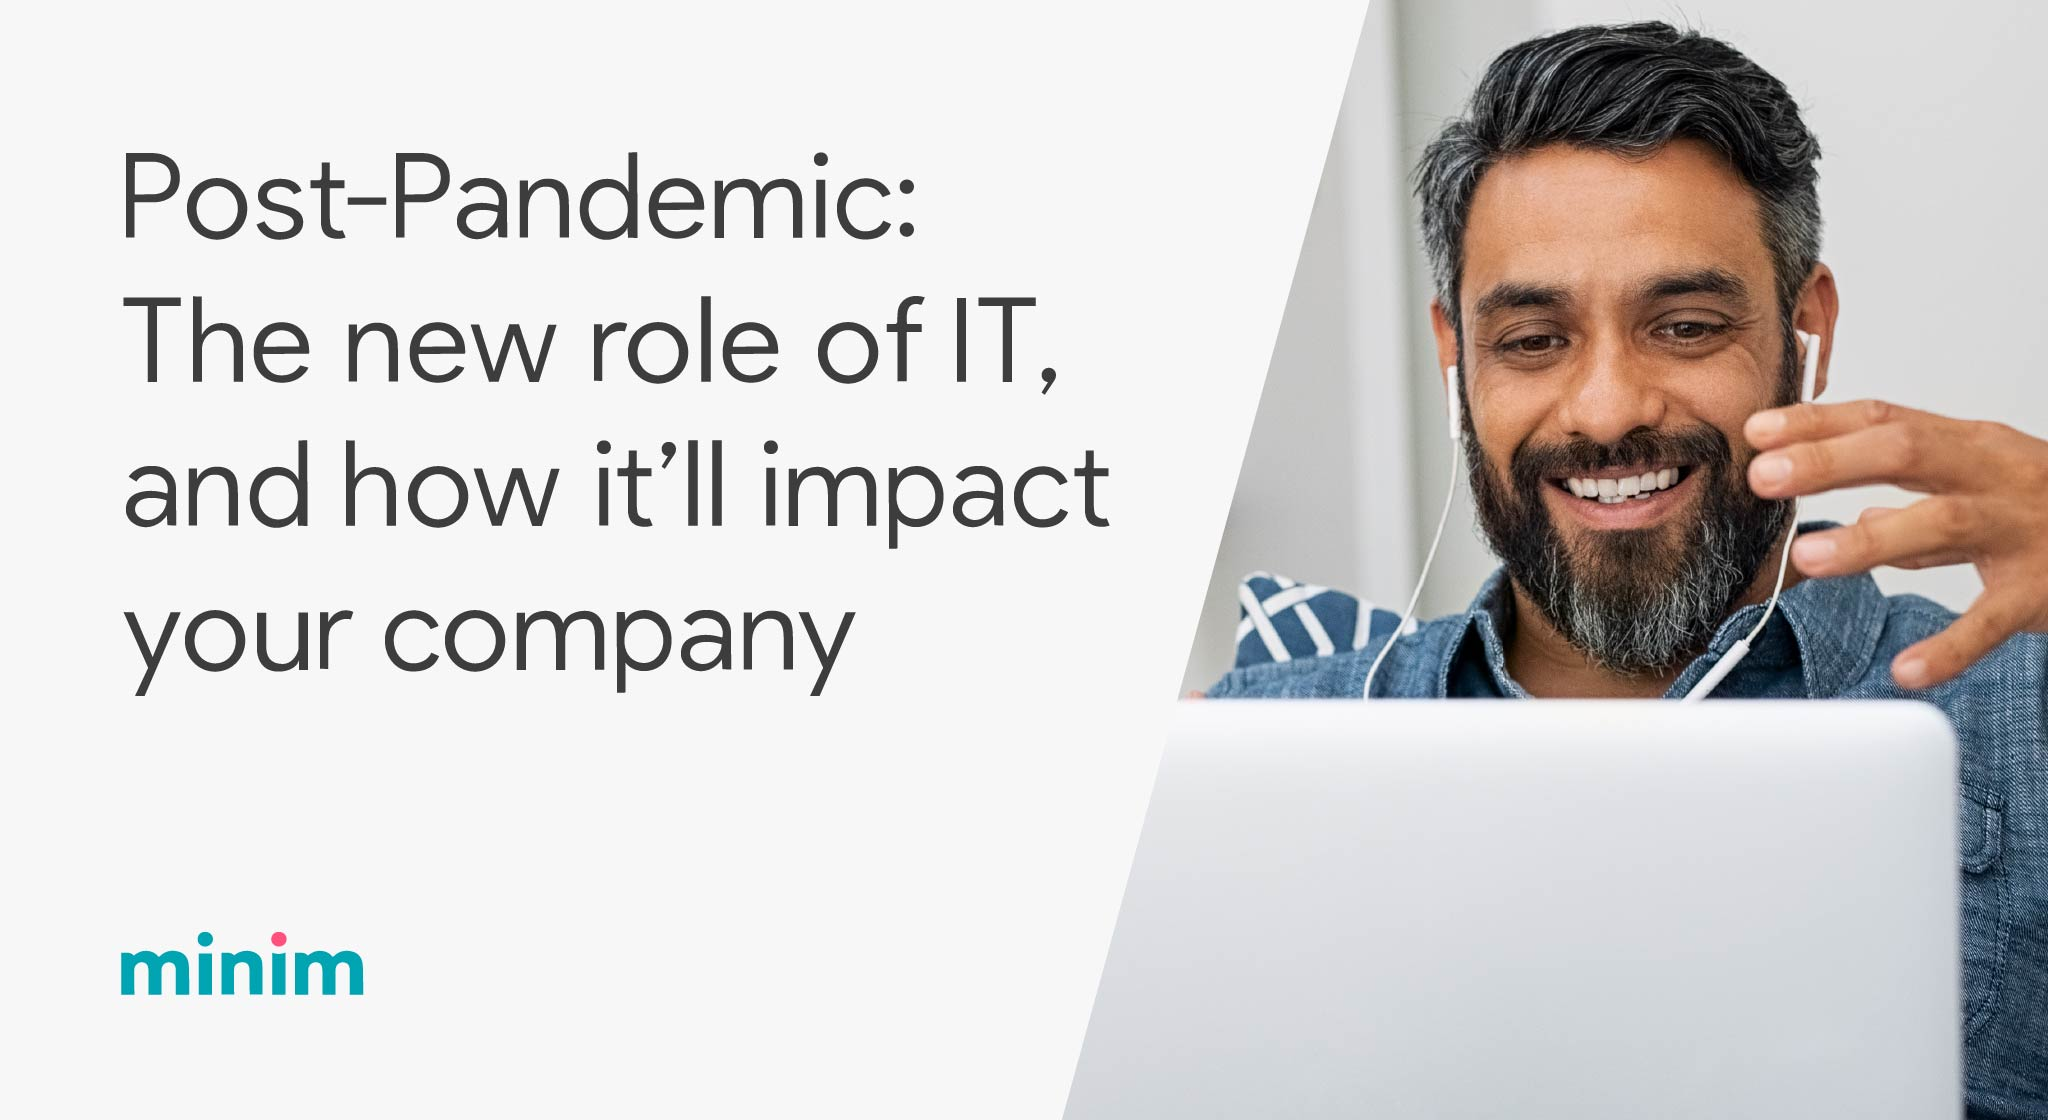 """<img src=""""young-male-professional-working-from-home-on-laptop.jpg"""" alt=""""post-pandemic-new-role-of-IT-and-how-it-will-impact-your-company-white-paper"""">"""